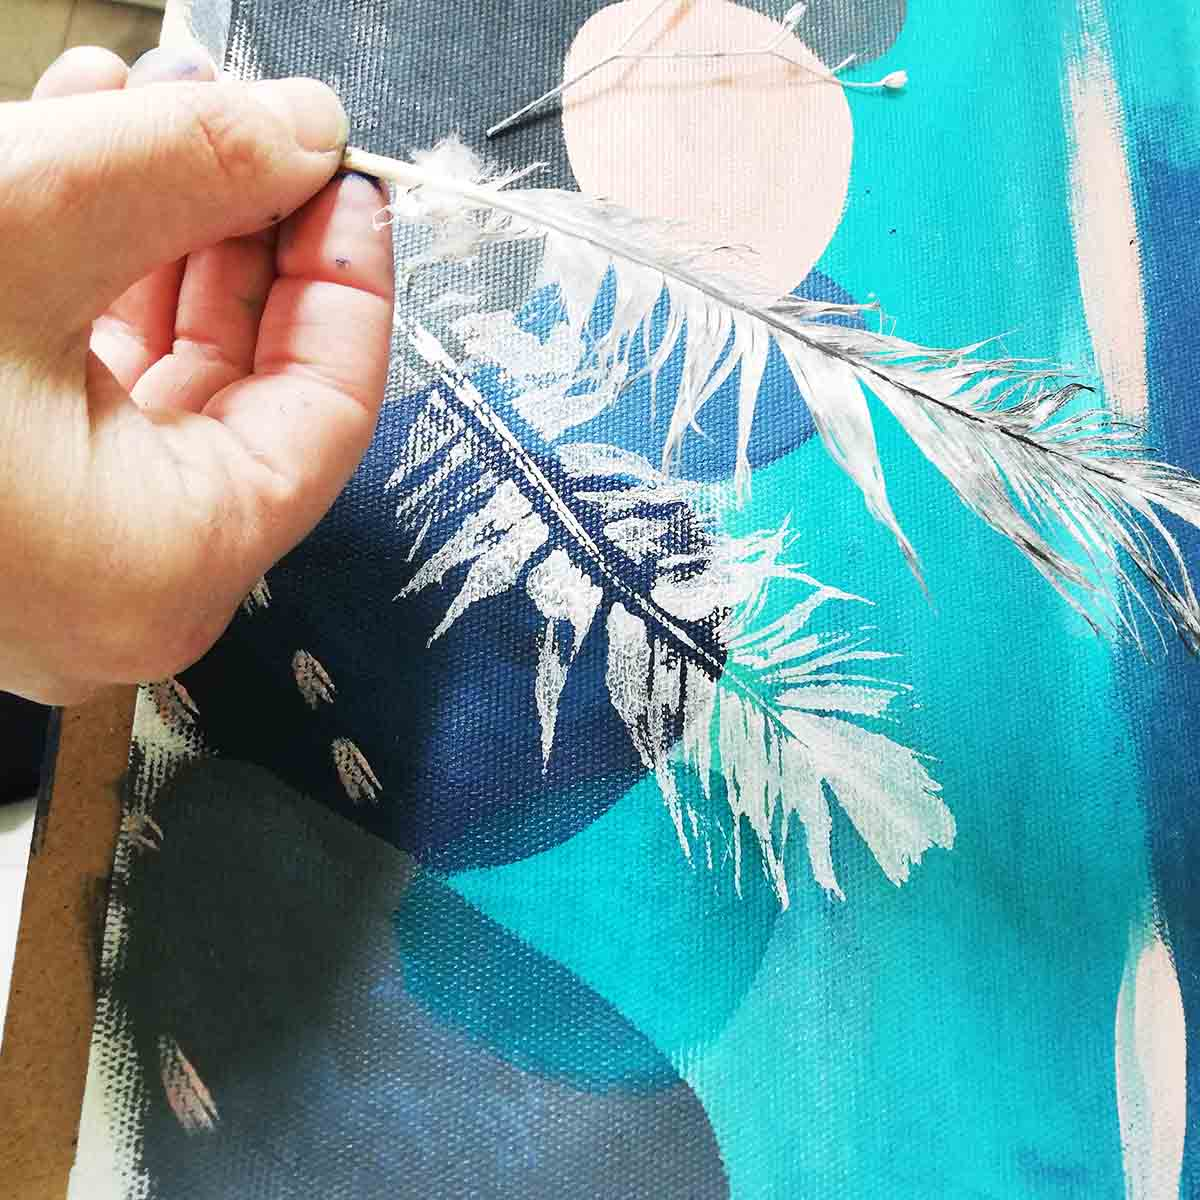 Mono Printing from Calm Original Textile painting by Artist Ellie Hipkin